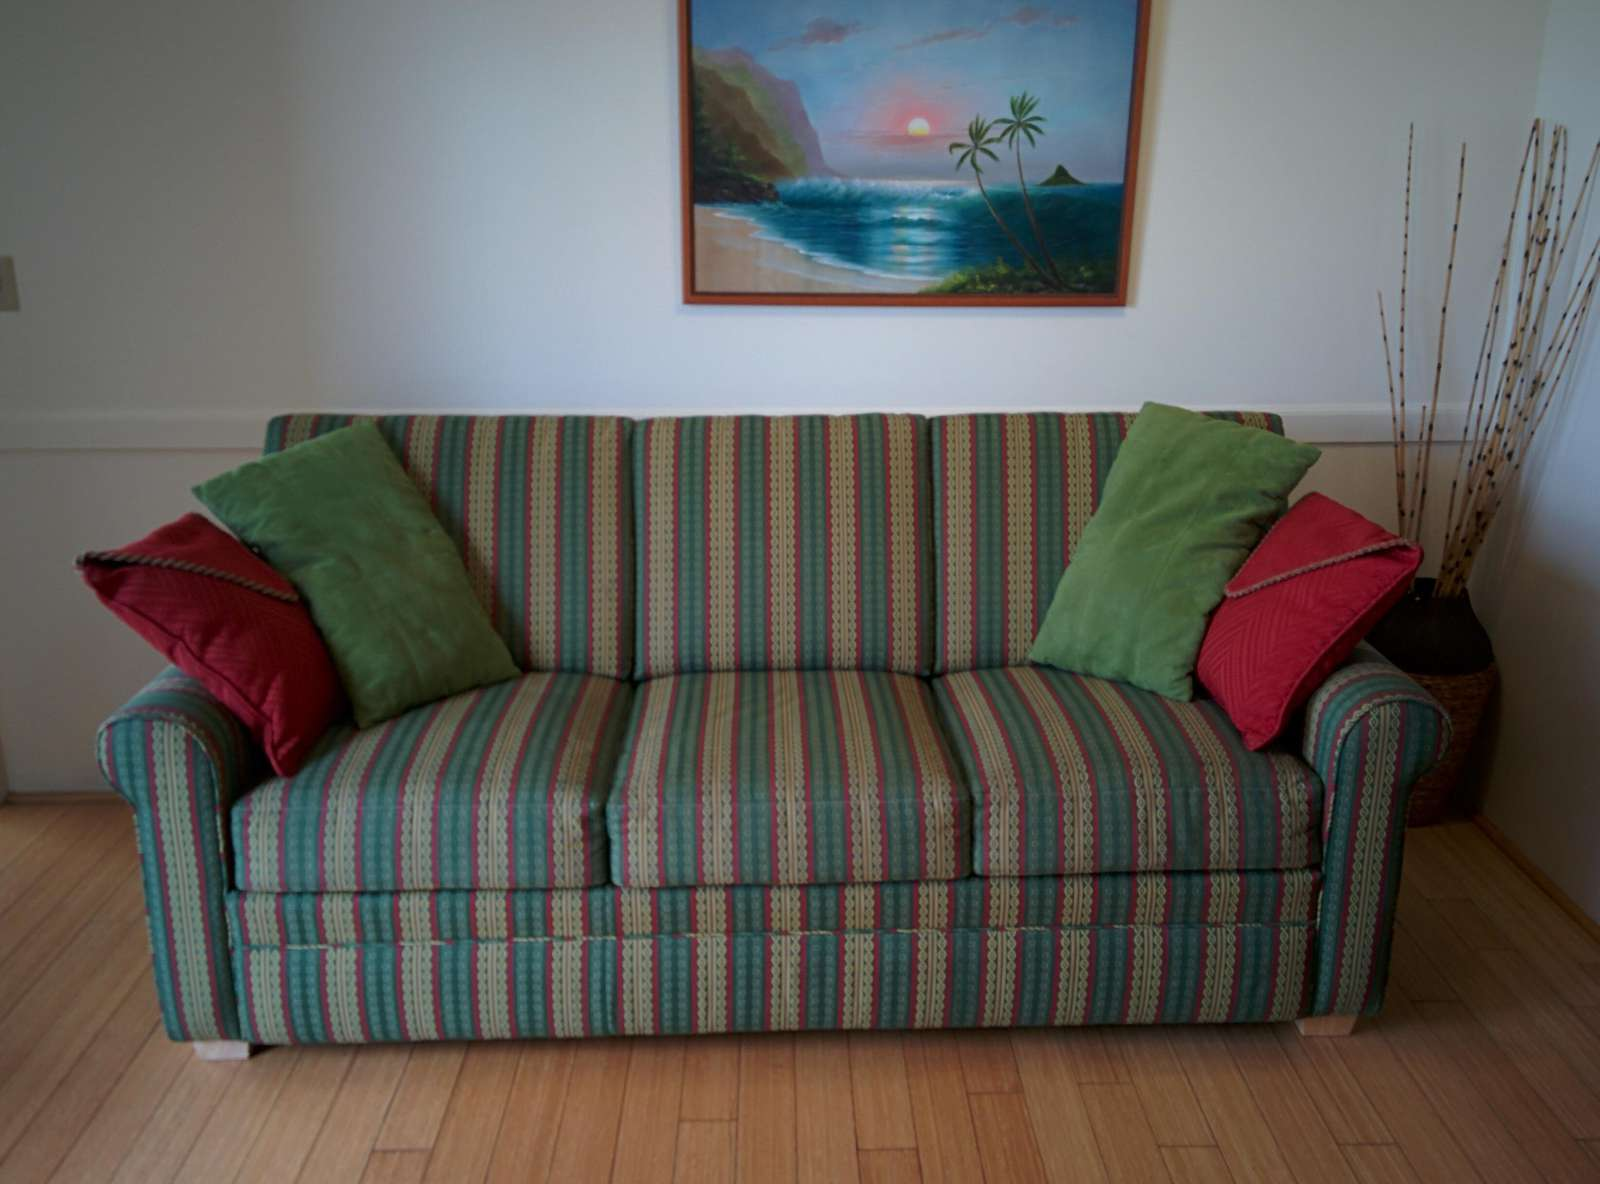 New sofabed